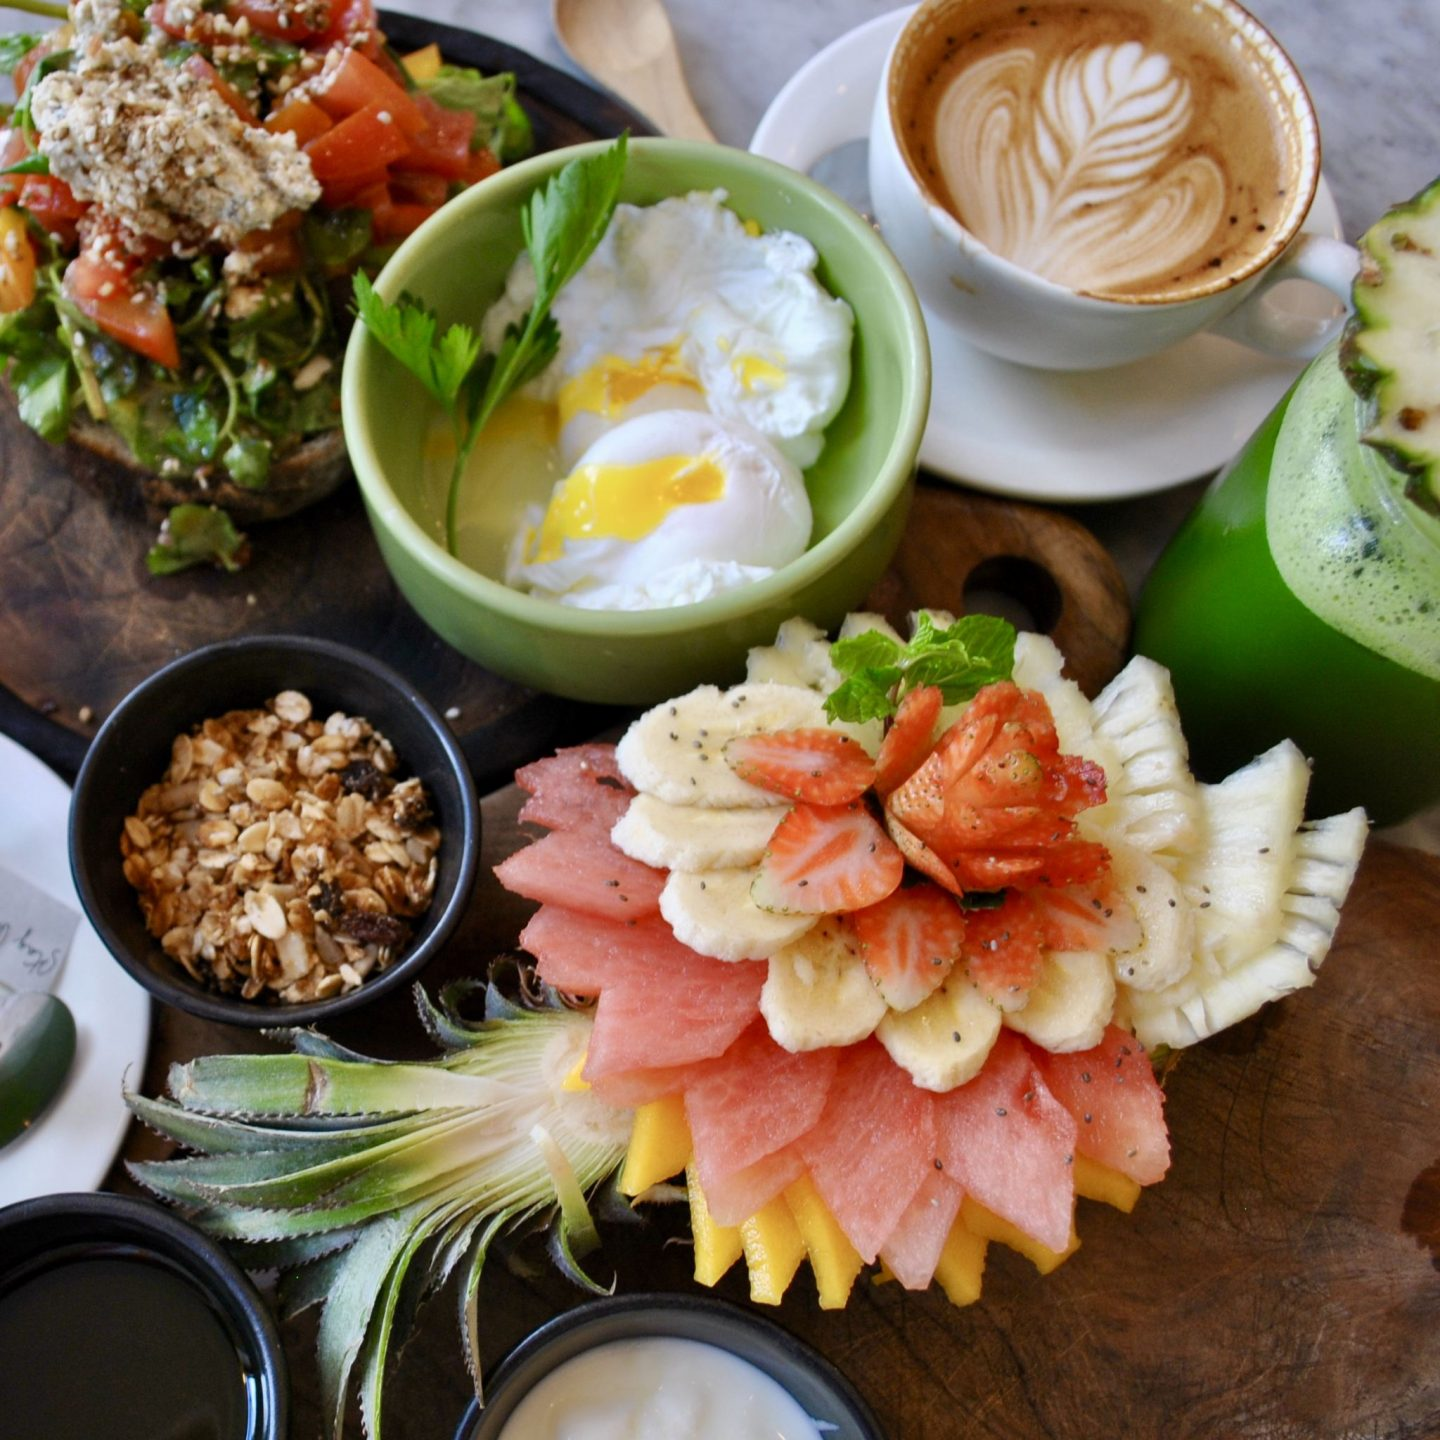 Bali Travel Guide for Foodies